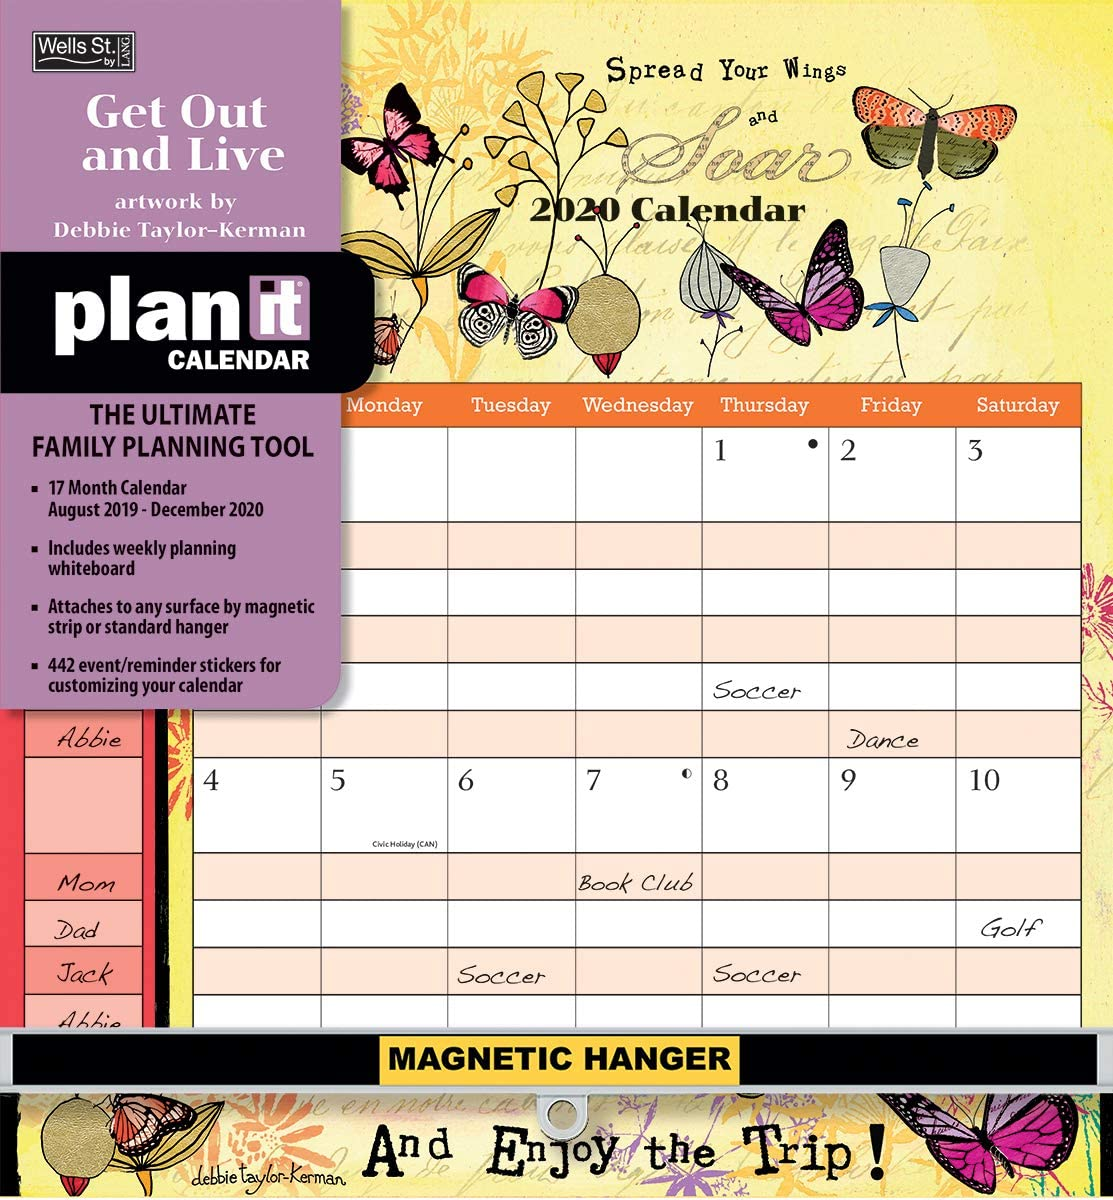 Wells Street by LANG WSBL Get Out and Live 2020 Plan-It/™ Plus Academic Wall Calendar 20997009172 20997009172